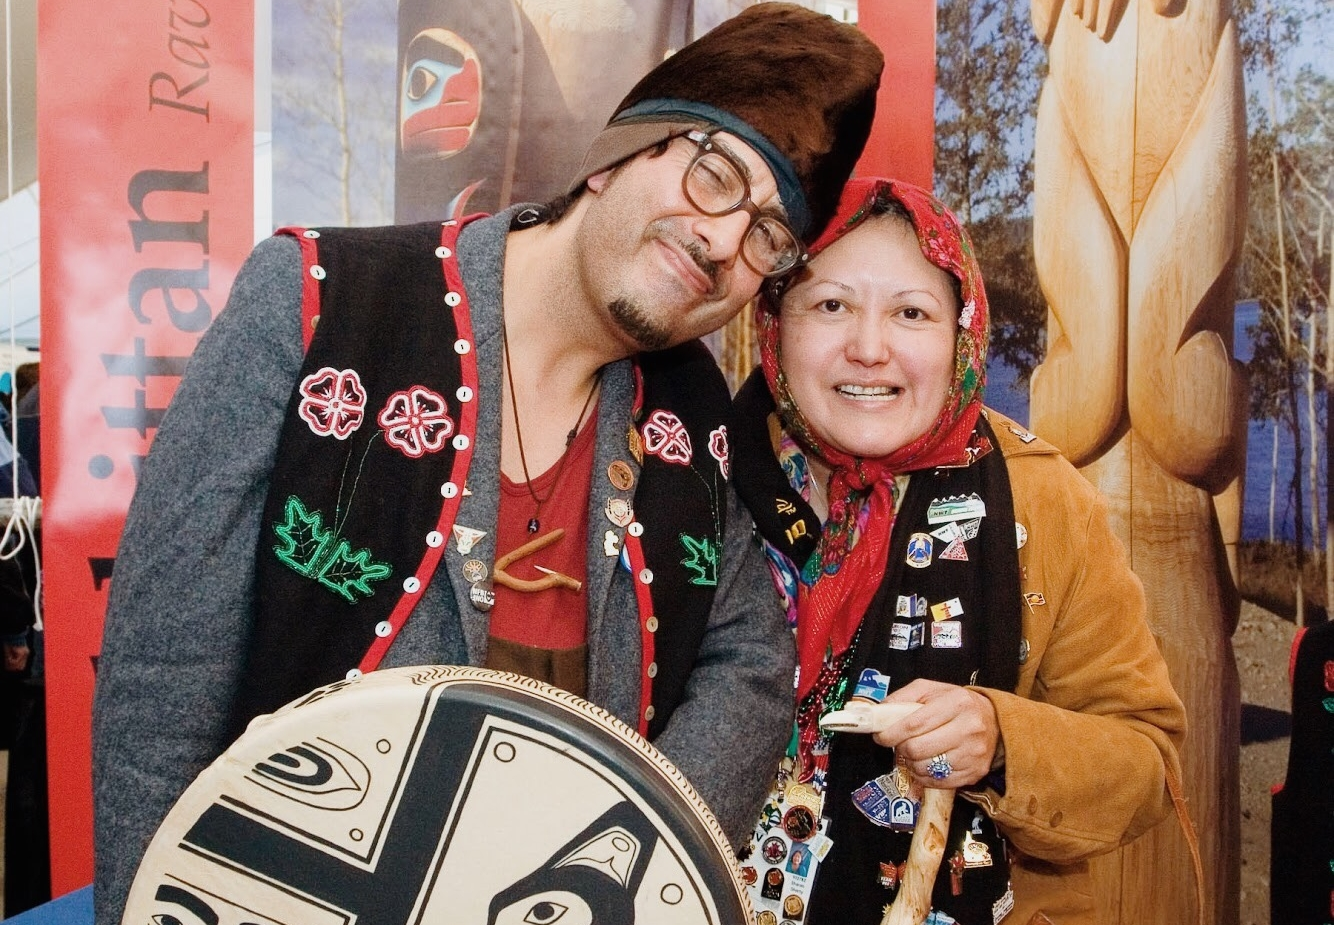 'Humour can heal' - by Lauren Hicks and Astara Van Der JagtSharon Shorty's childhood was full of laughter. Her Gramma Carrie told traditional Tlingit stories and had a knack for making anything funny. With Shorty, the laughter continues.Read more...